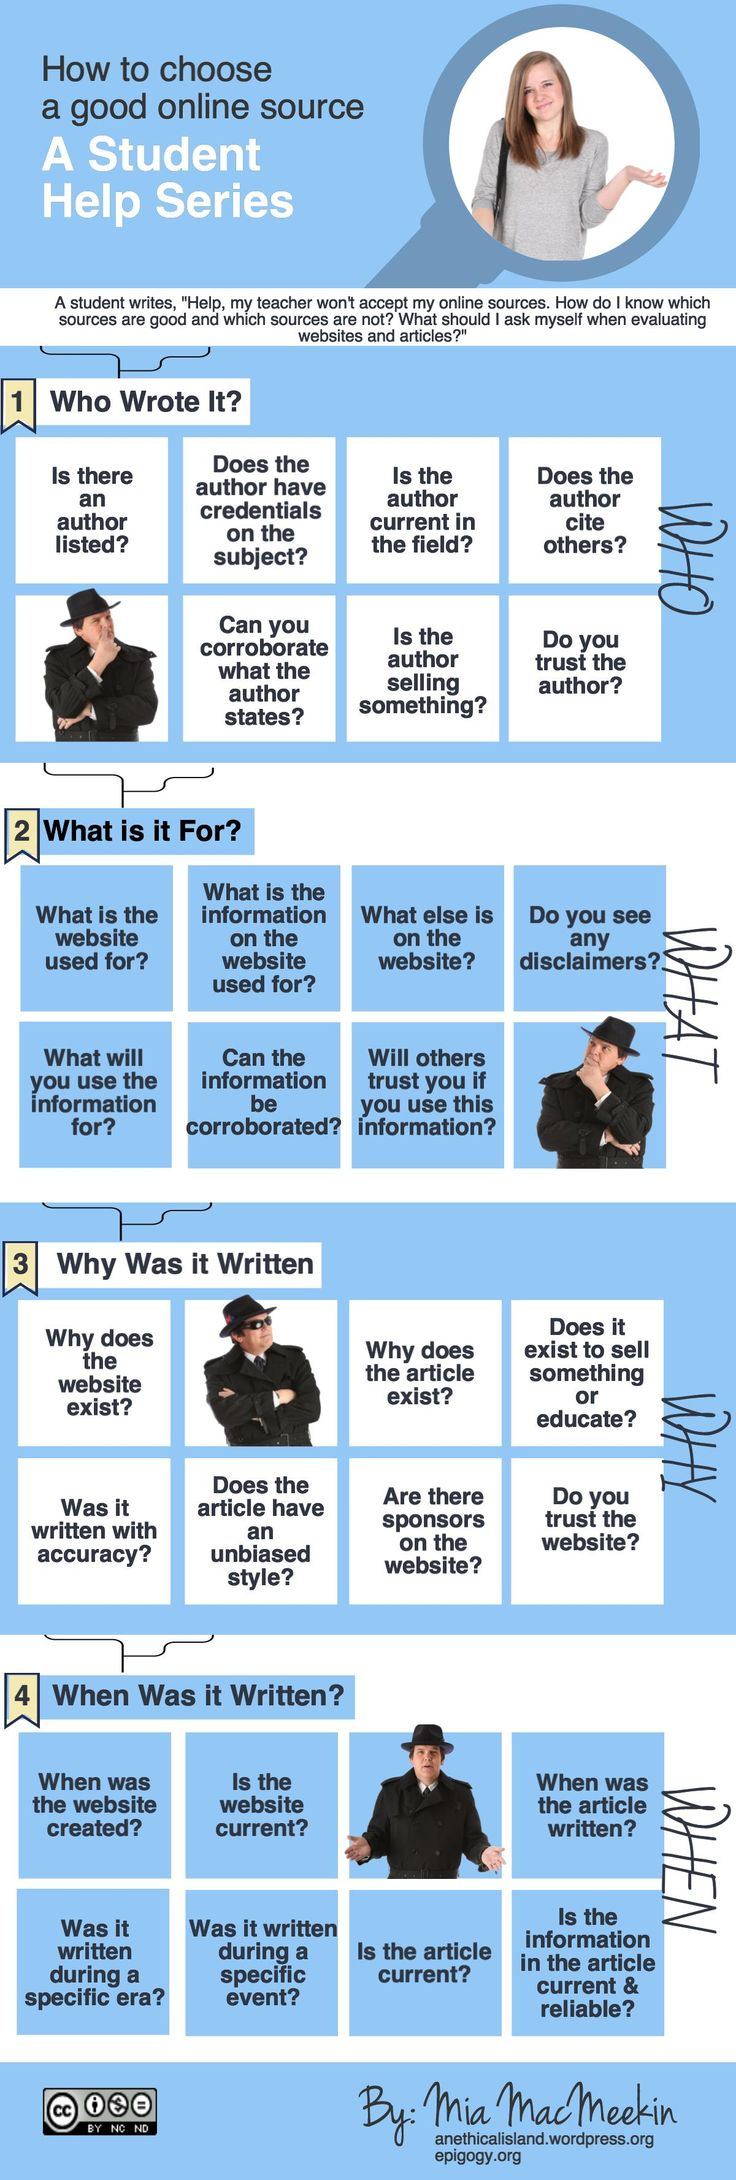 "Students often ask how to determine which websites and articles are good sources to cite. My answer is always, ""Well, what do you think?"" Students need to be able to think on their own. So, if your..."